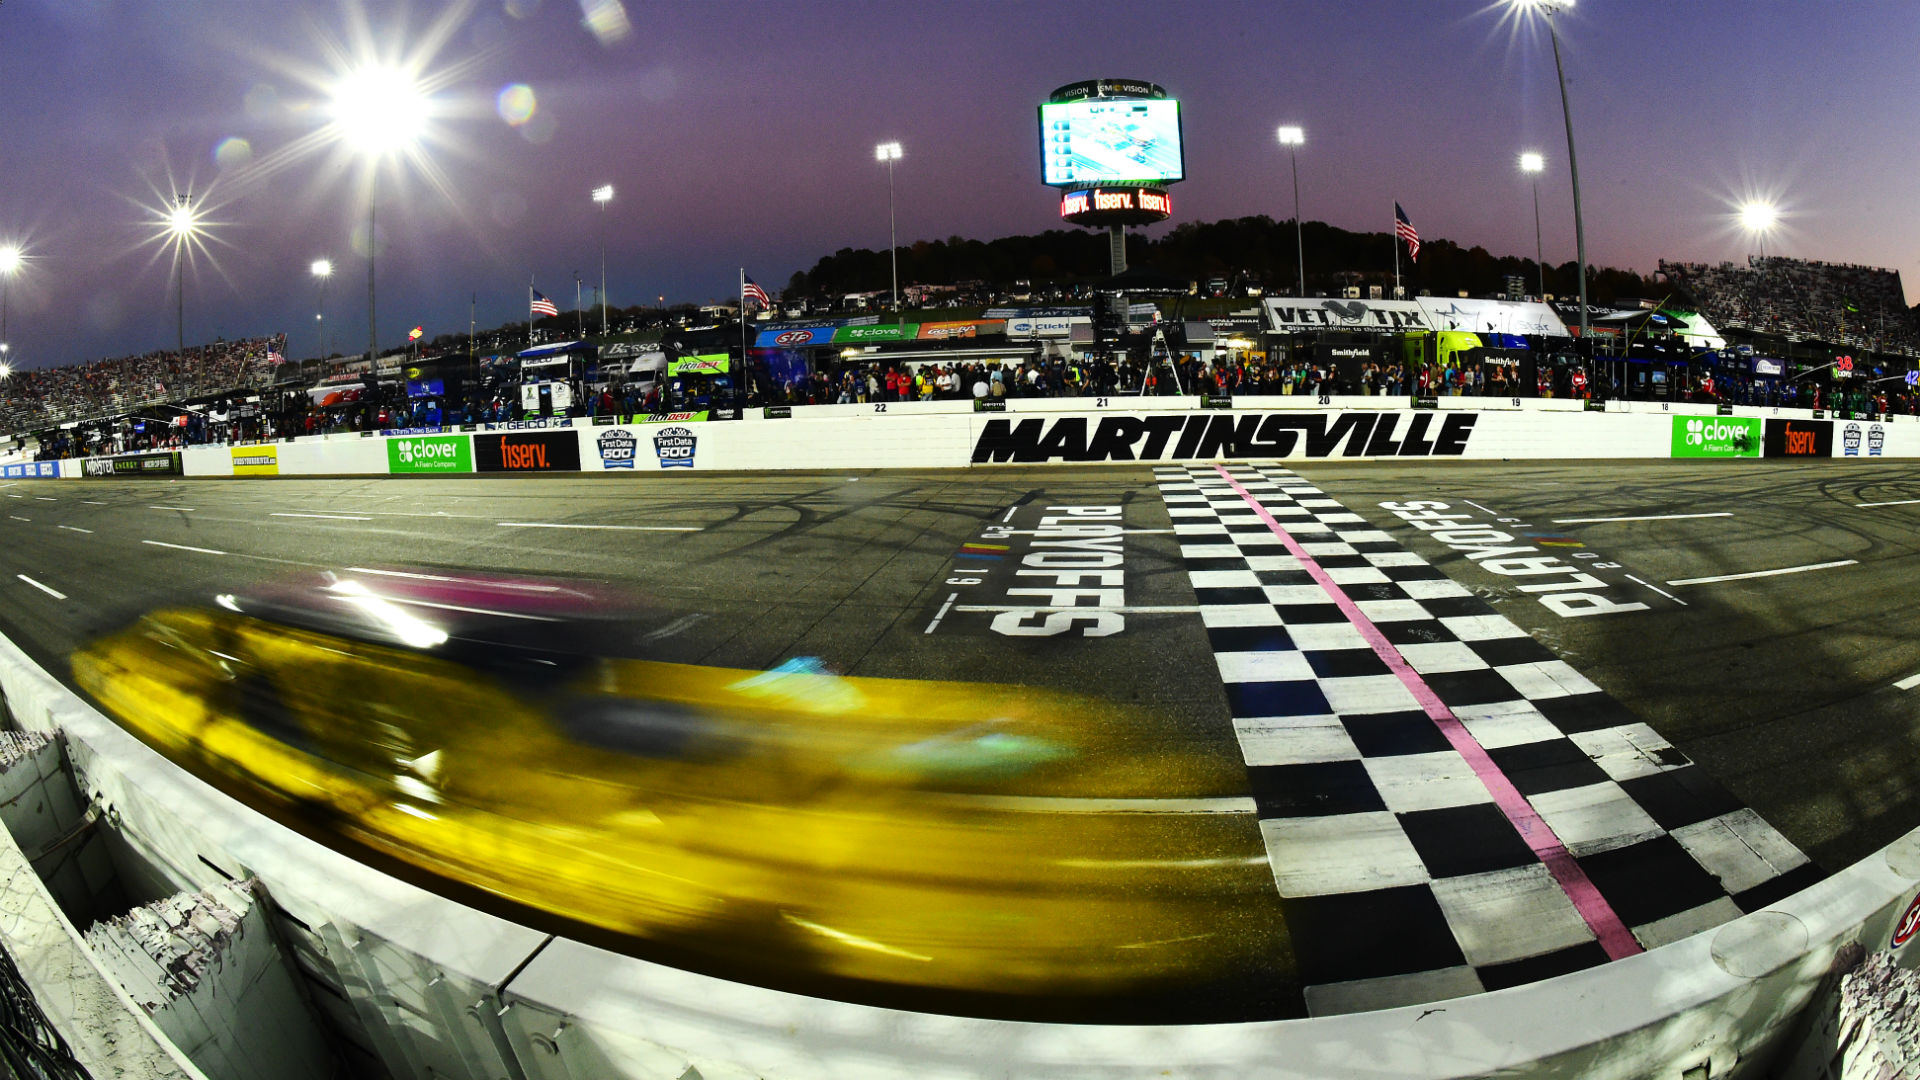 NASCAR race weather: Will rain in Martinsville forecast delay Wednesday's Cup race? 1